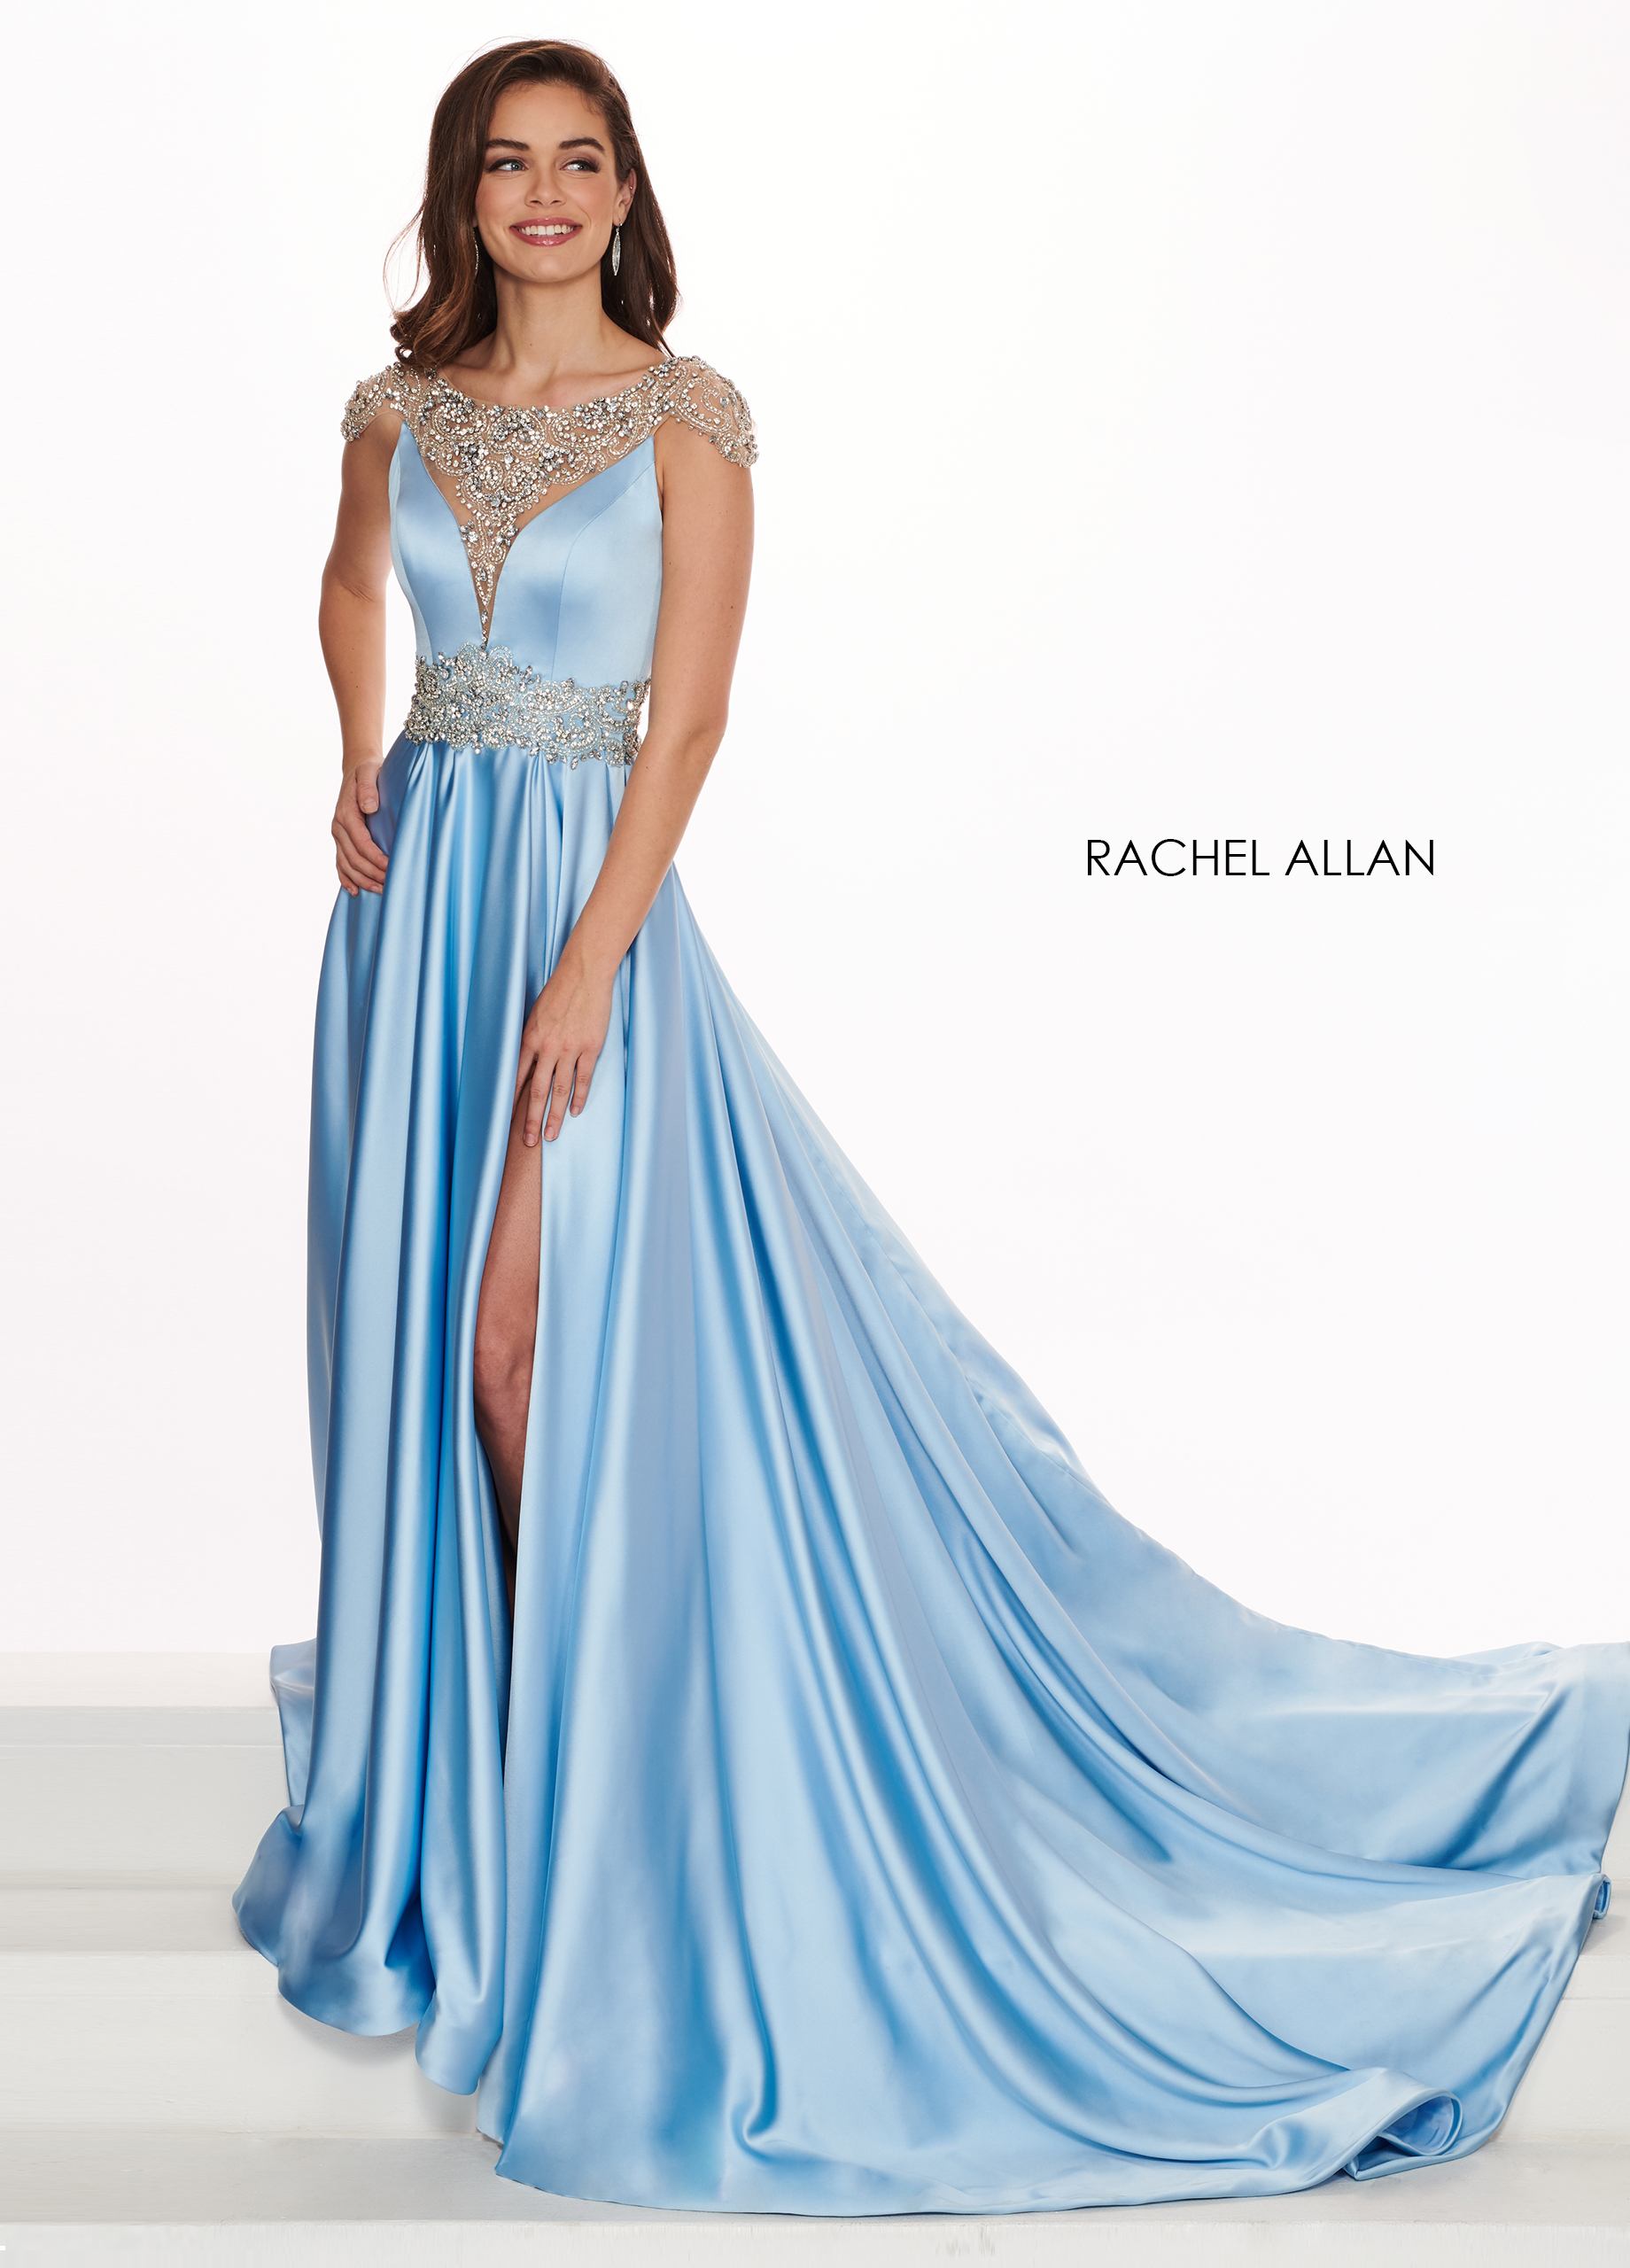 Beaded A-Line Pageant Dresses in Turquoise Color